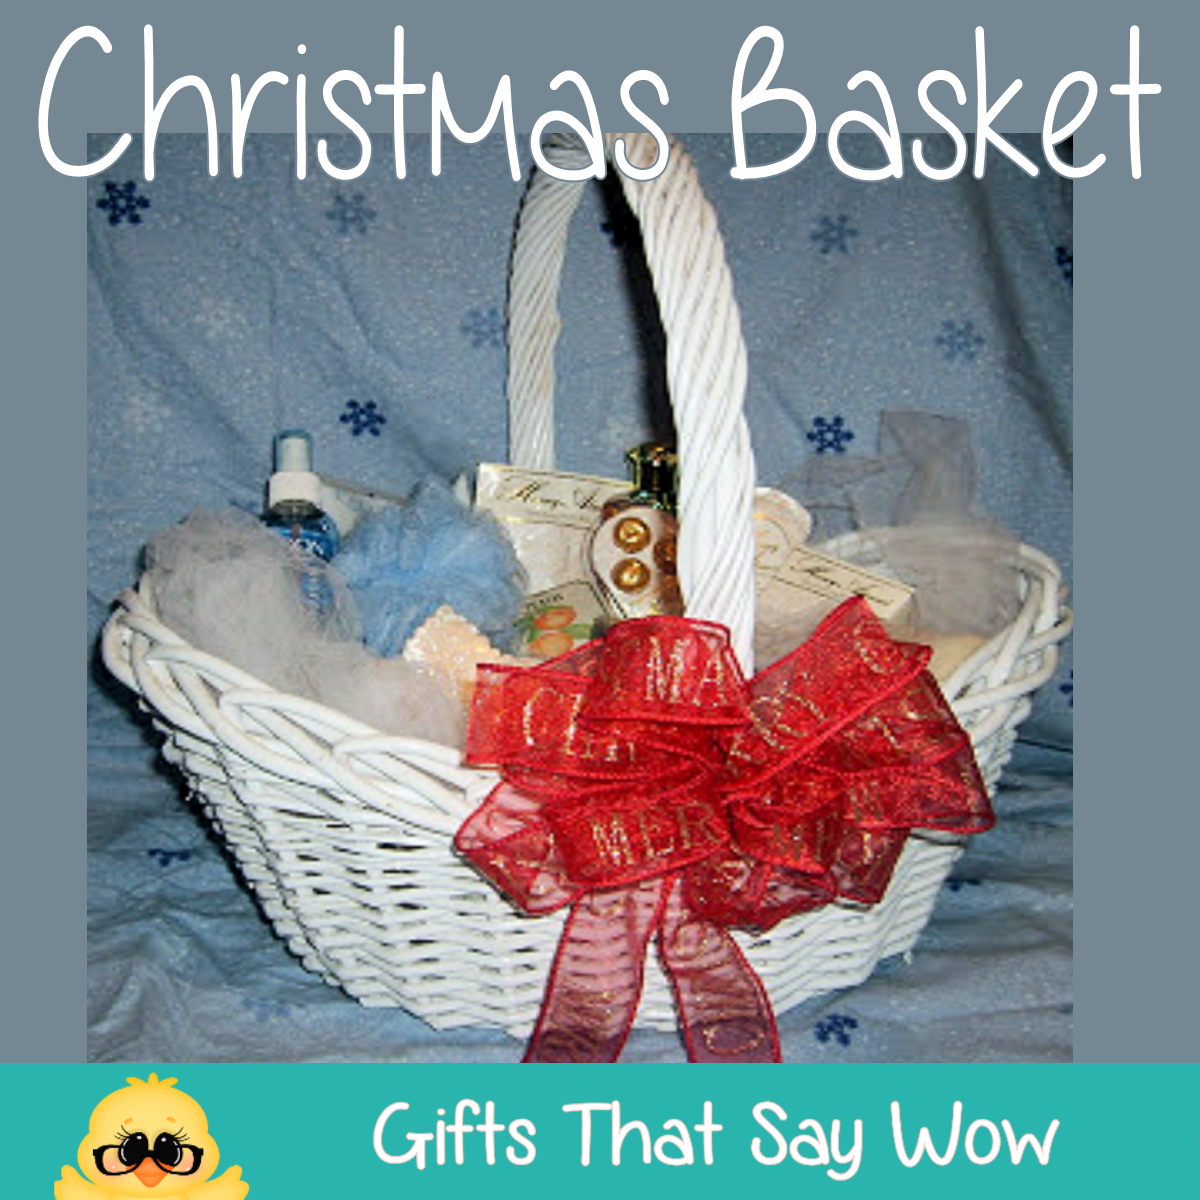 GIFTS THAT SAY WOW - Fun Crafts and Gift Ideas: Christmas Baskets